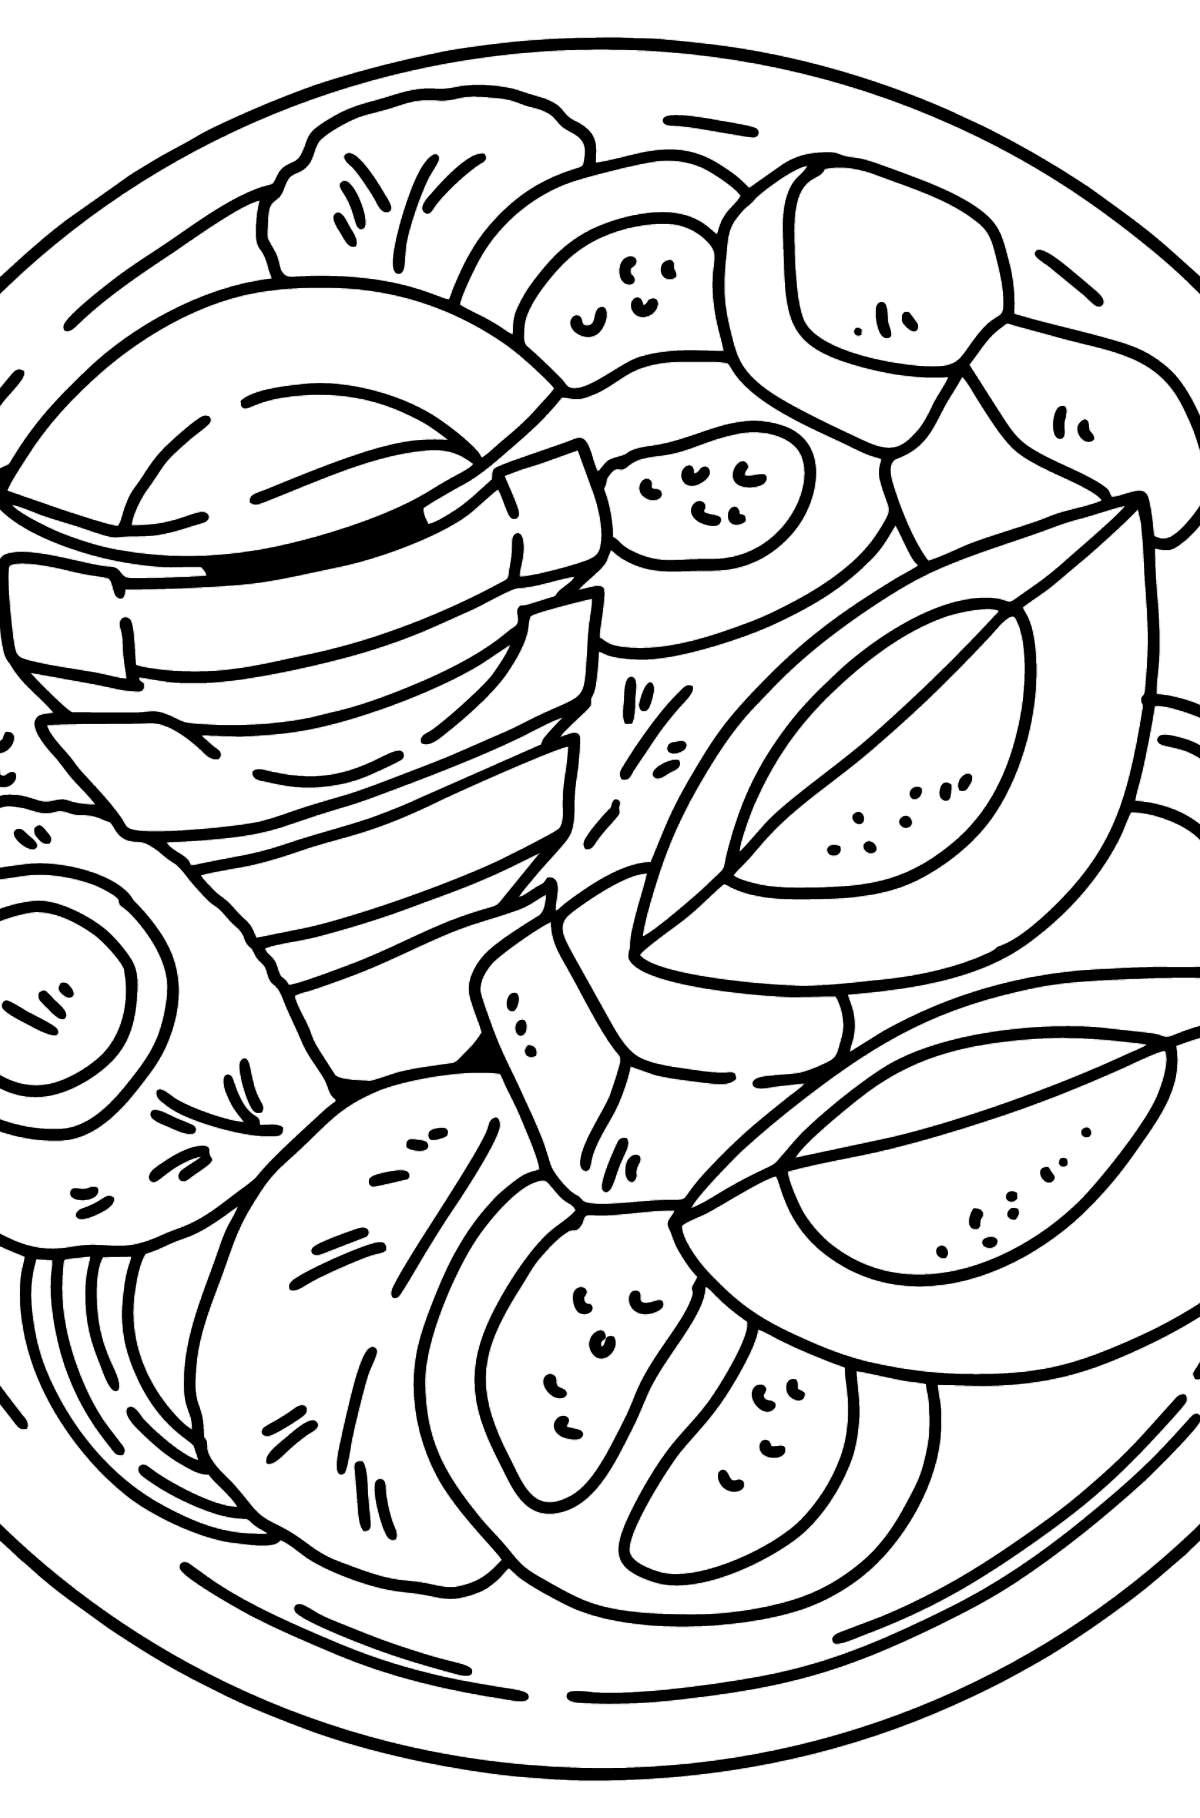 Avocado Salad coloring page - Coloring Pages for Kids